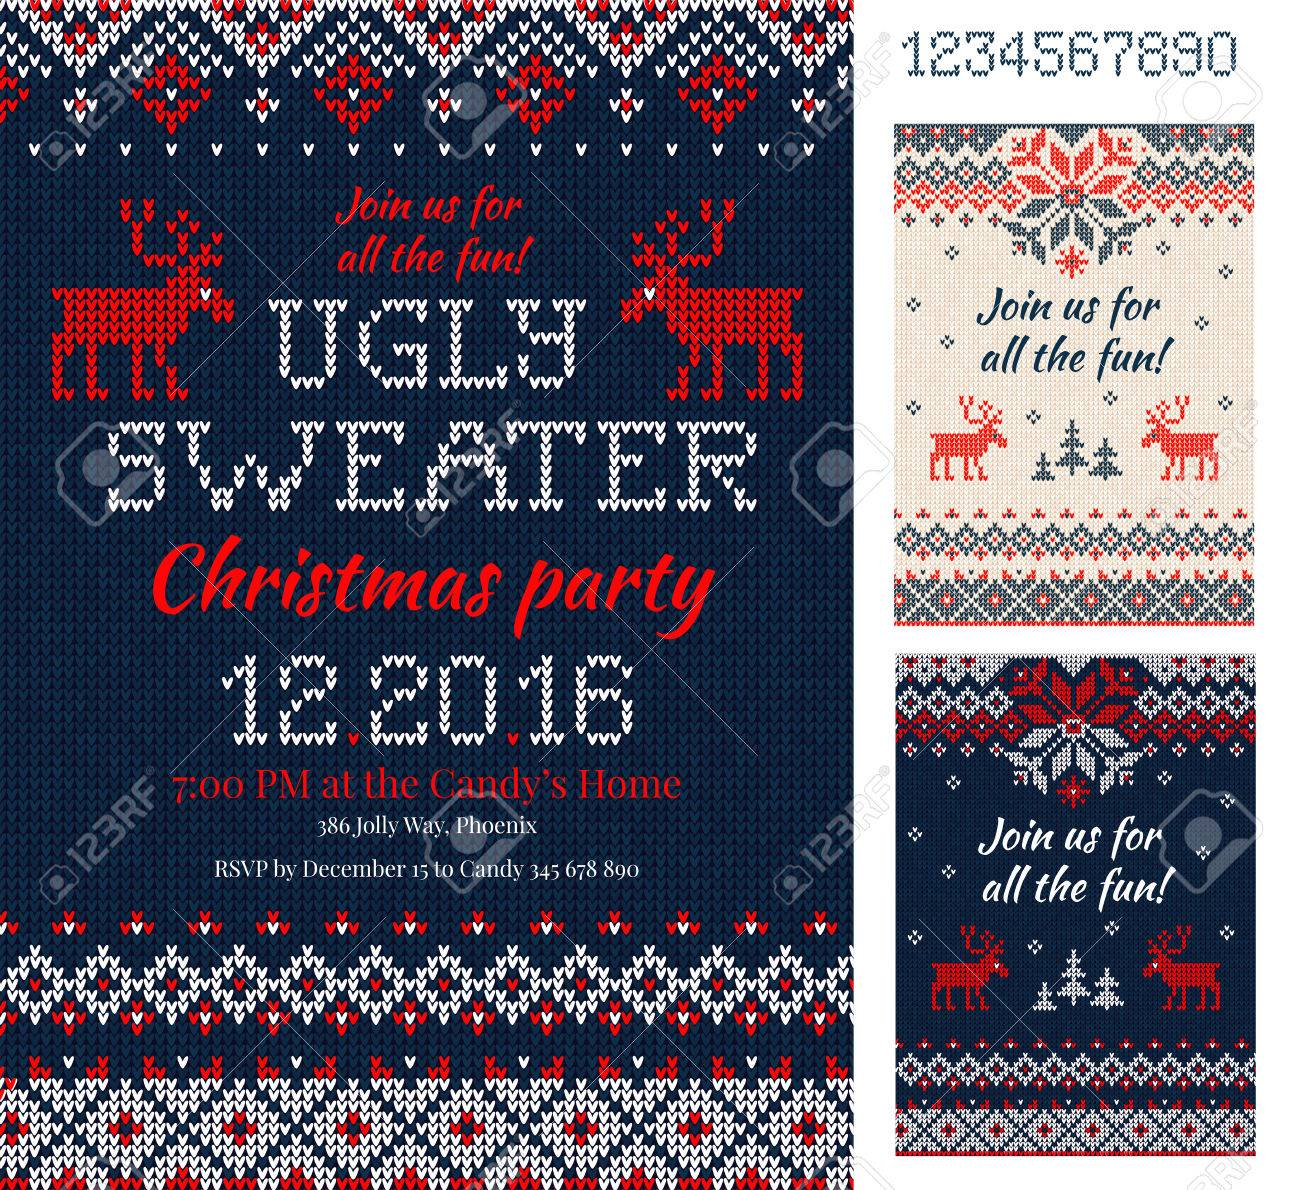 13524f366415b Merry Christmas Party Invitation cards with knitted patterns and ornaments  in scandinavian style with deers.